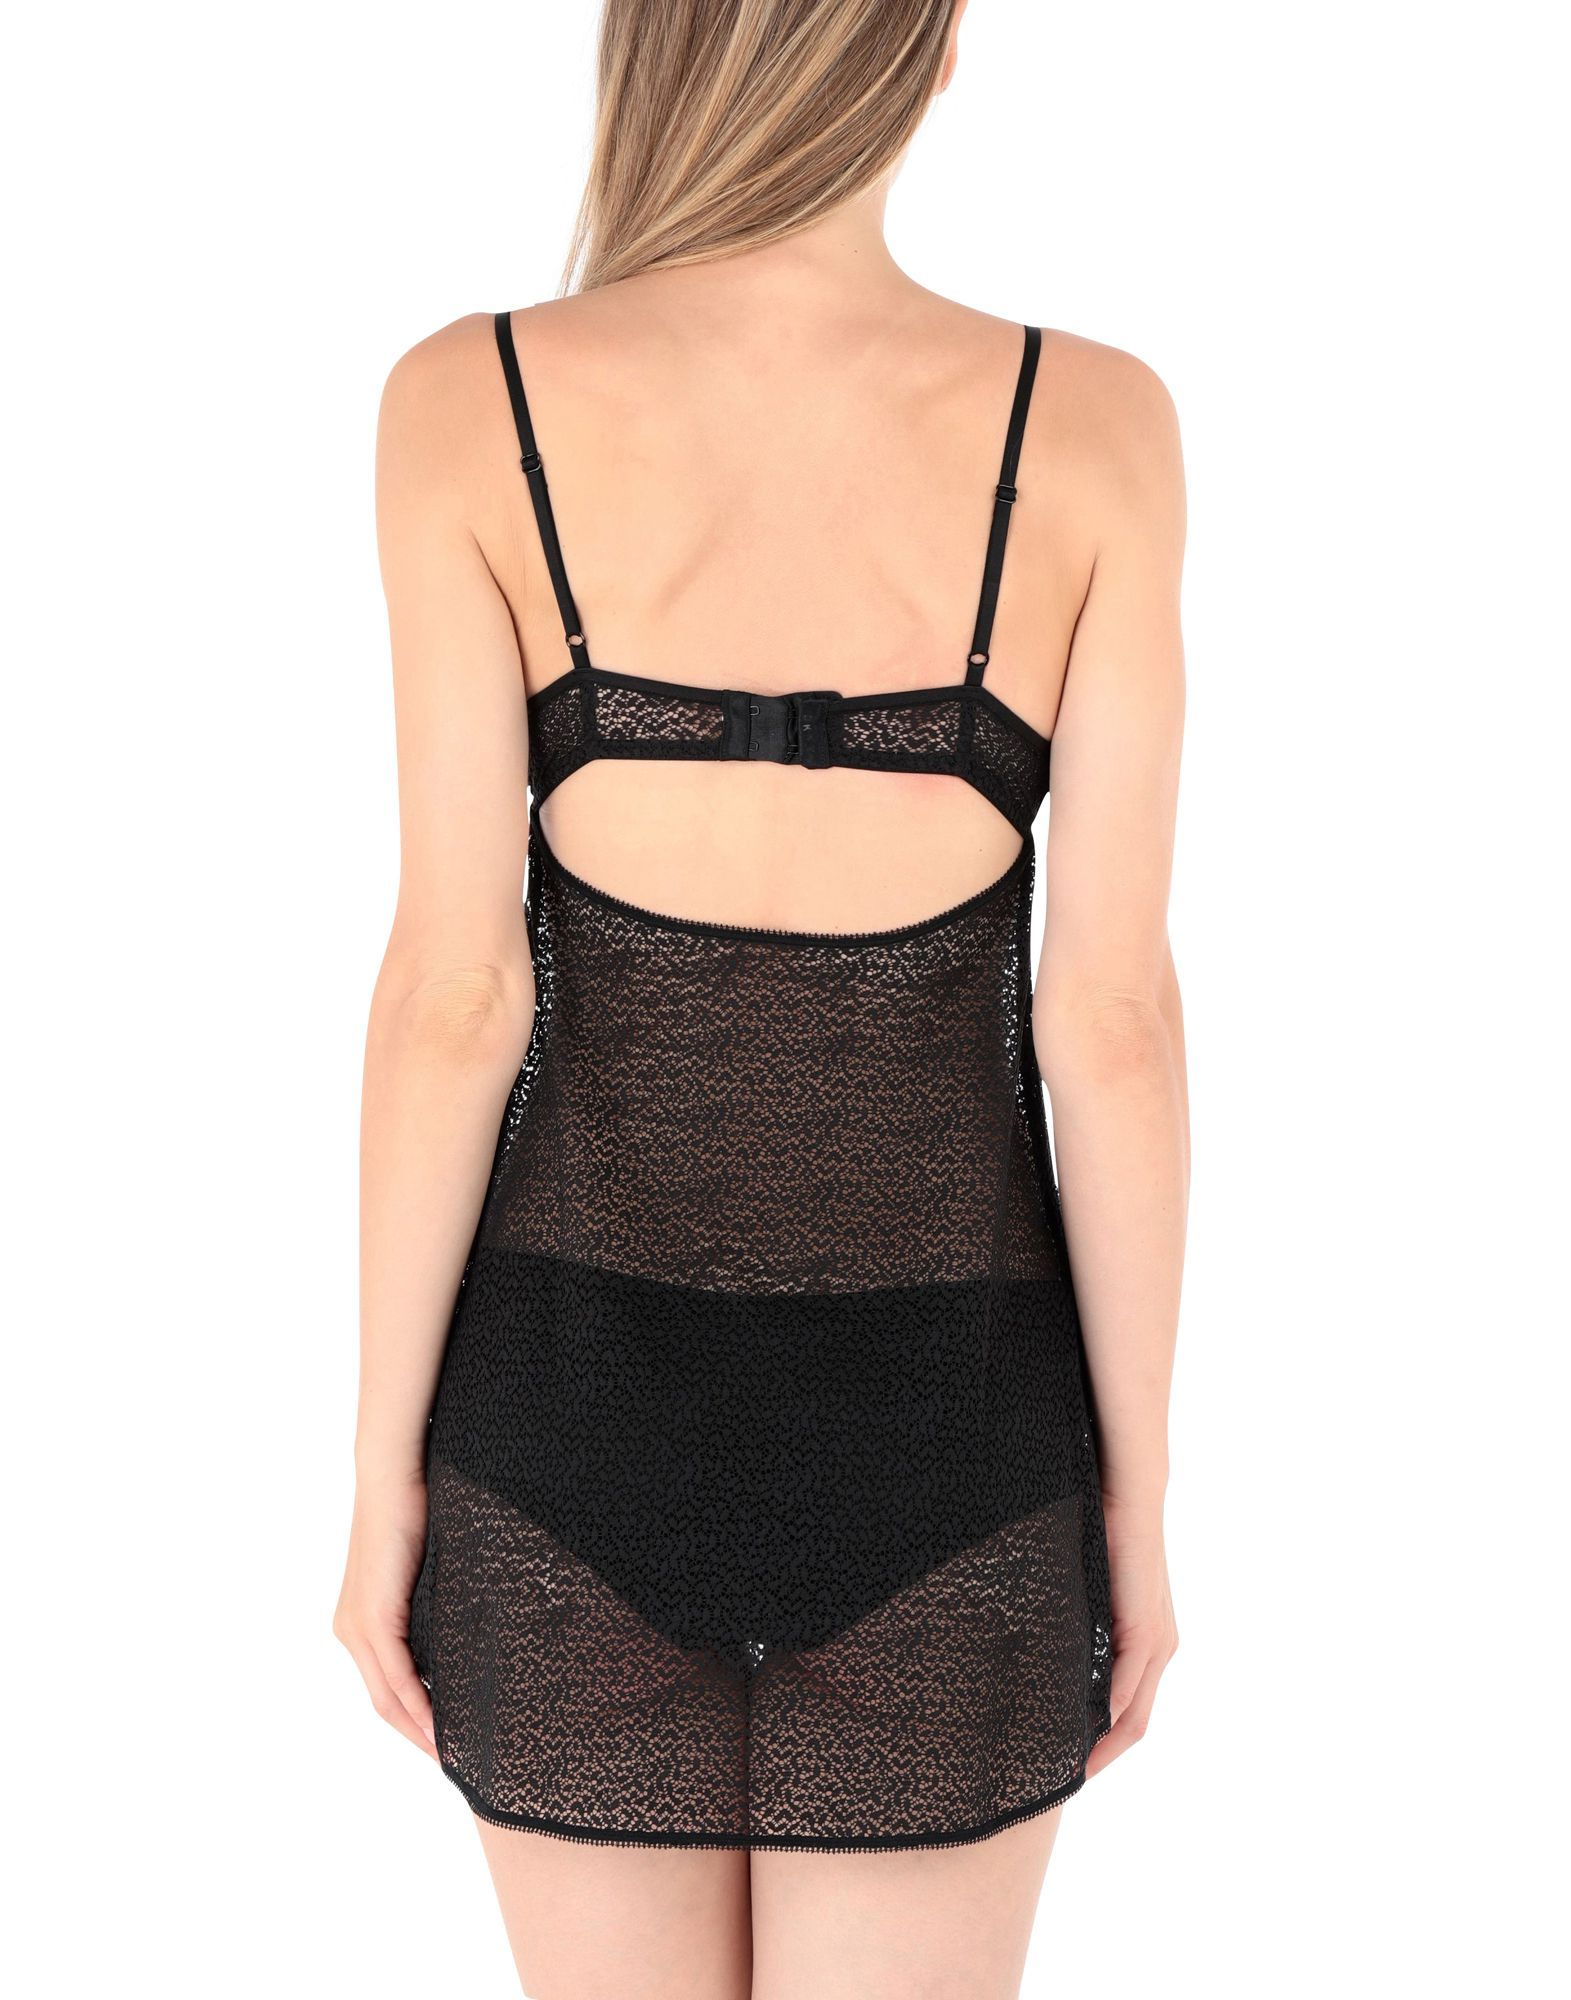 UNDERWEAR Woman Dkny Black Polyamid